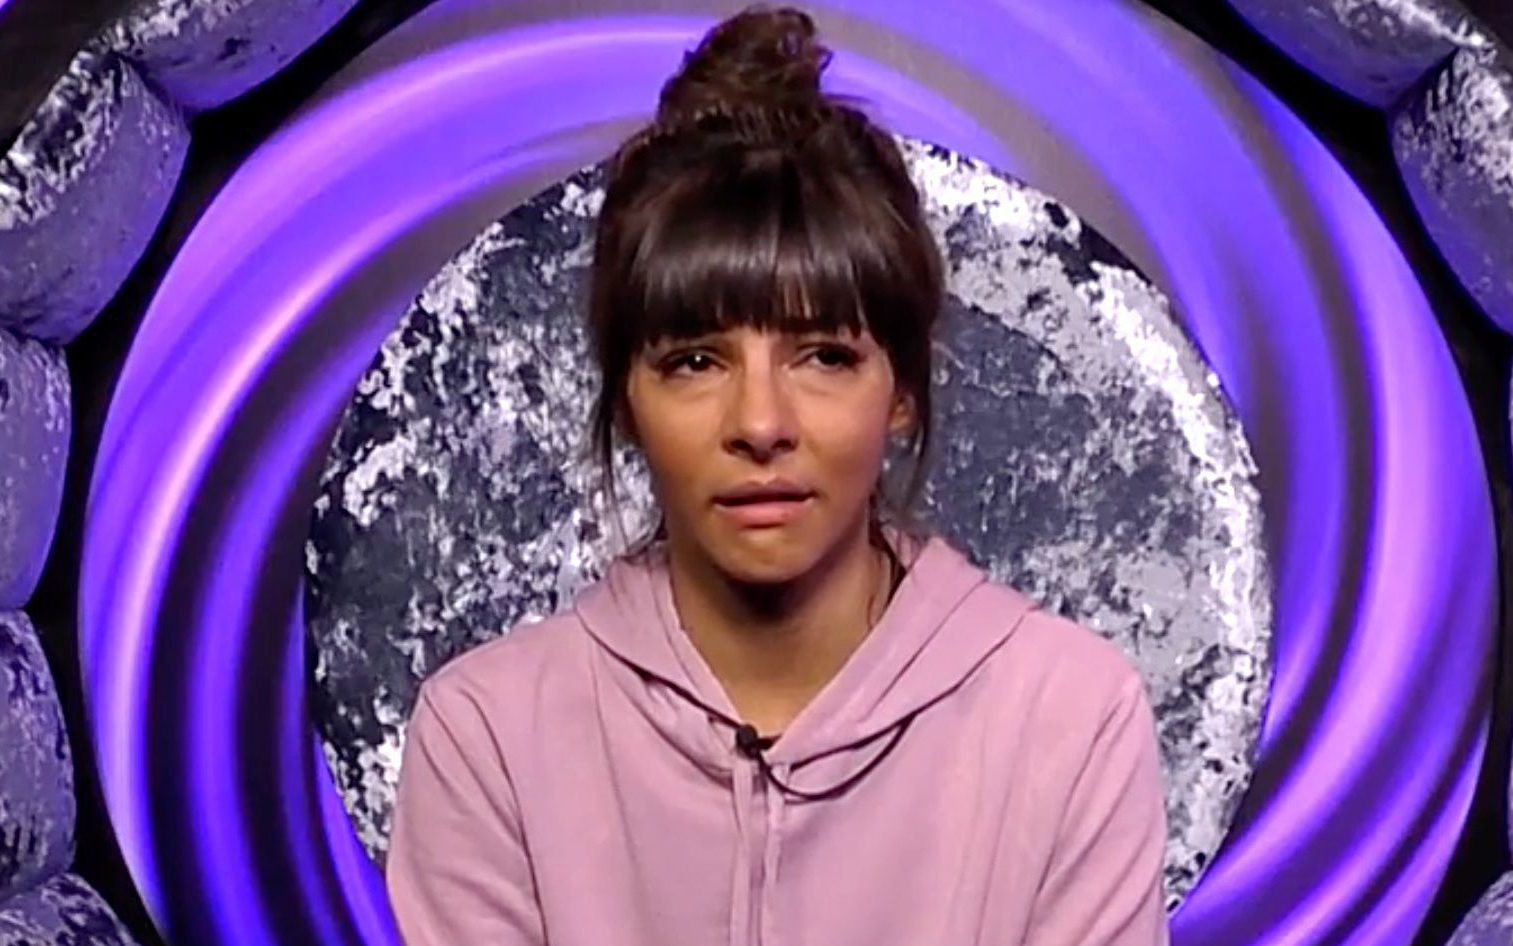 Editorial Use Only Mandatory Credit: Photo by REX/Shutterstock (9826810ay) Roxanne Pallett cries in the diary room 'Celebrity Big Brother' TV show, Series 22, Elstree Studios, Hertfordshire, UK - 30 Aug 2018